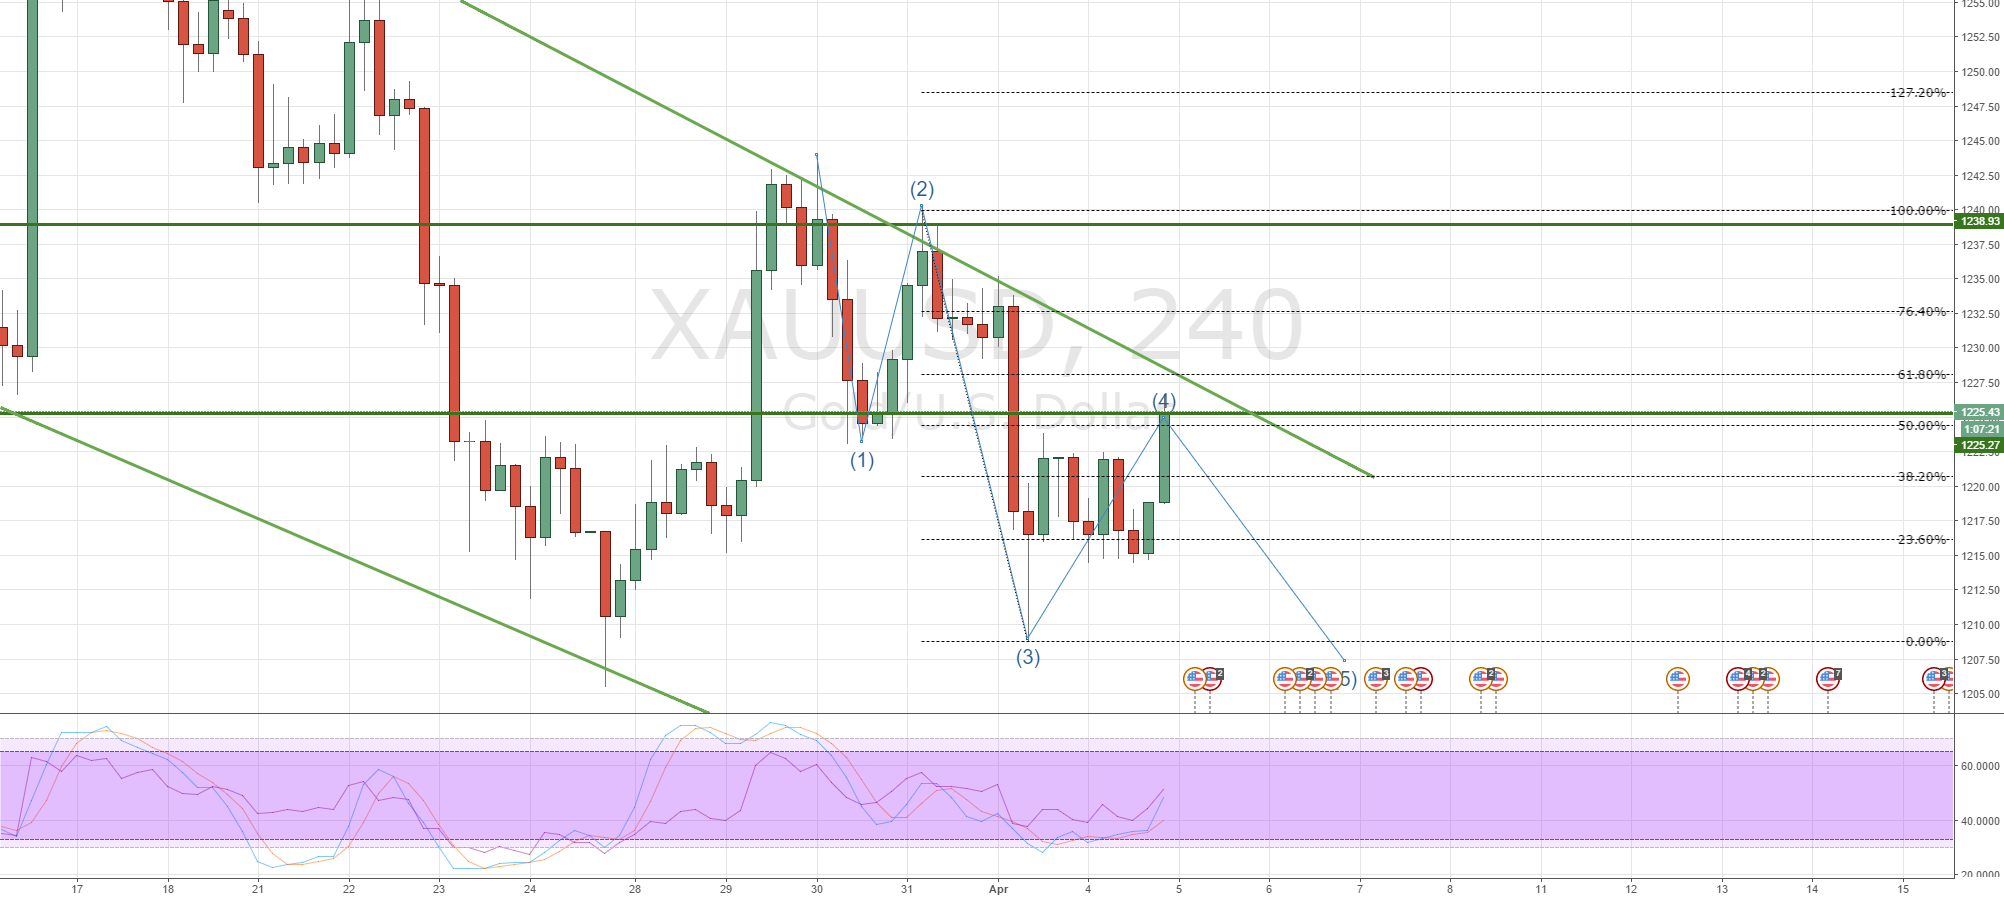 Gold 4th wave completed?